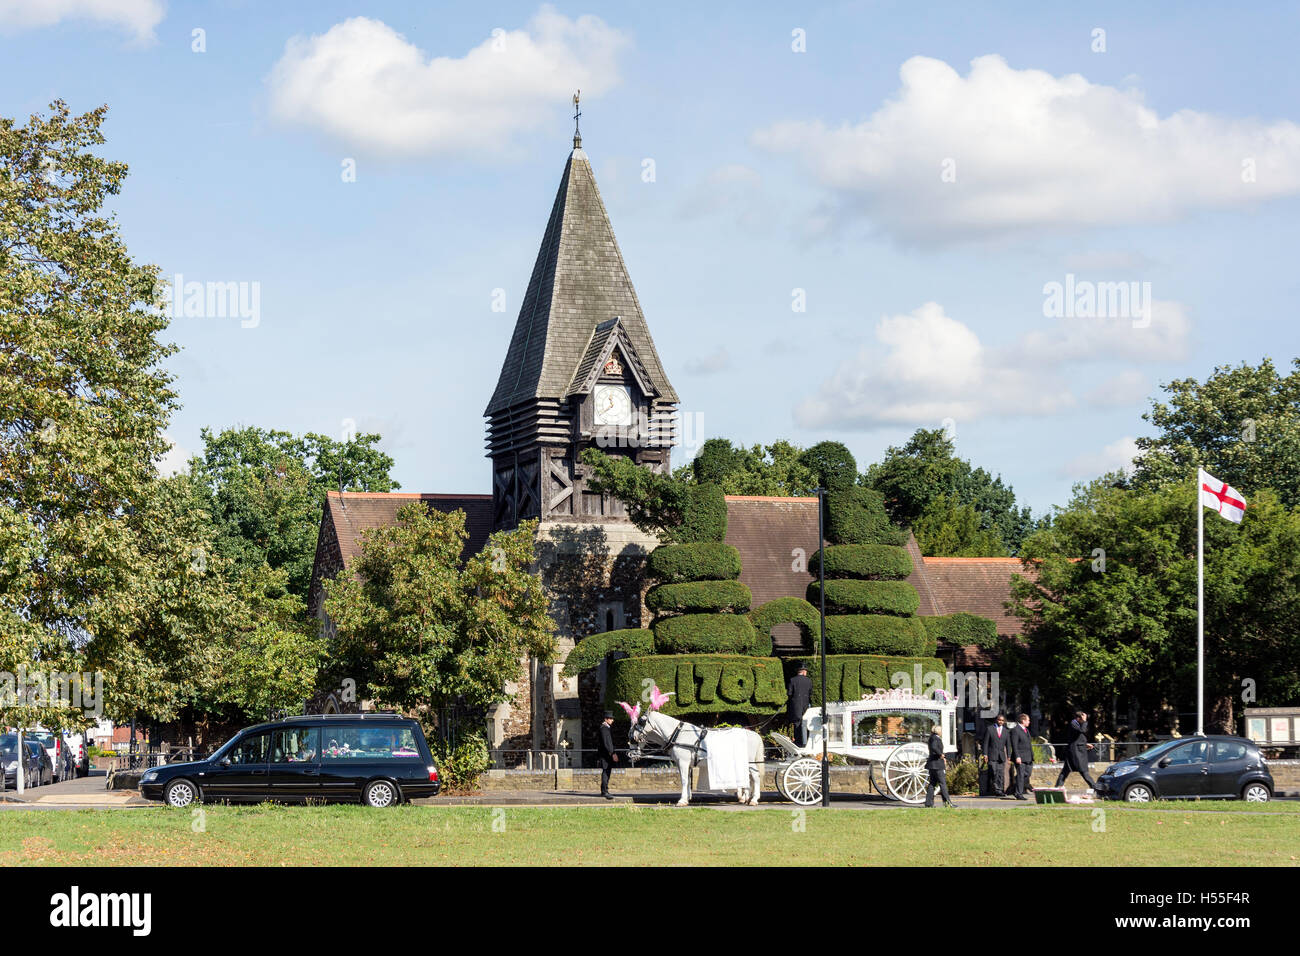 Funeral at St Mary's Church, Bedfont Green, Bedfont, London Borough of Hounslow, Greater London, England, United - Stock Image